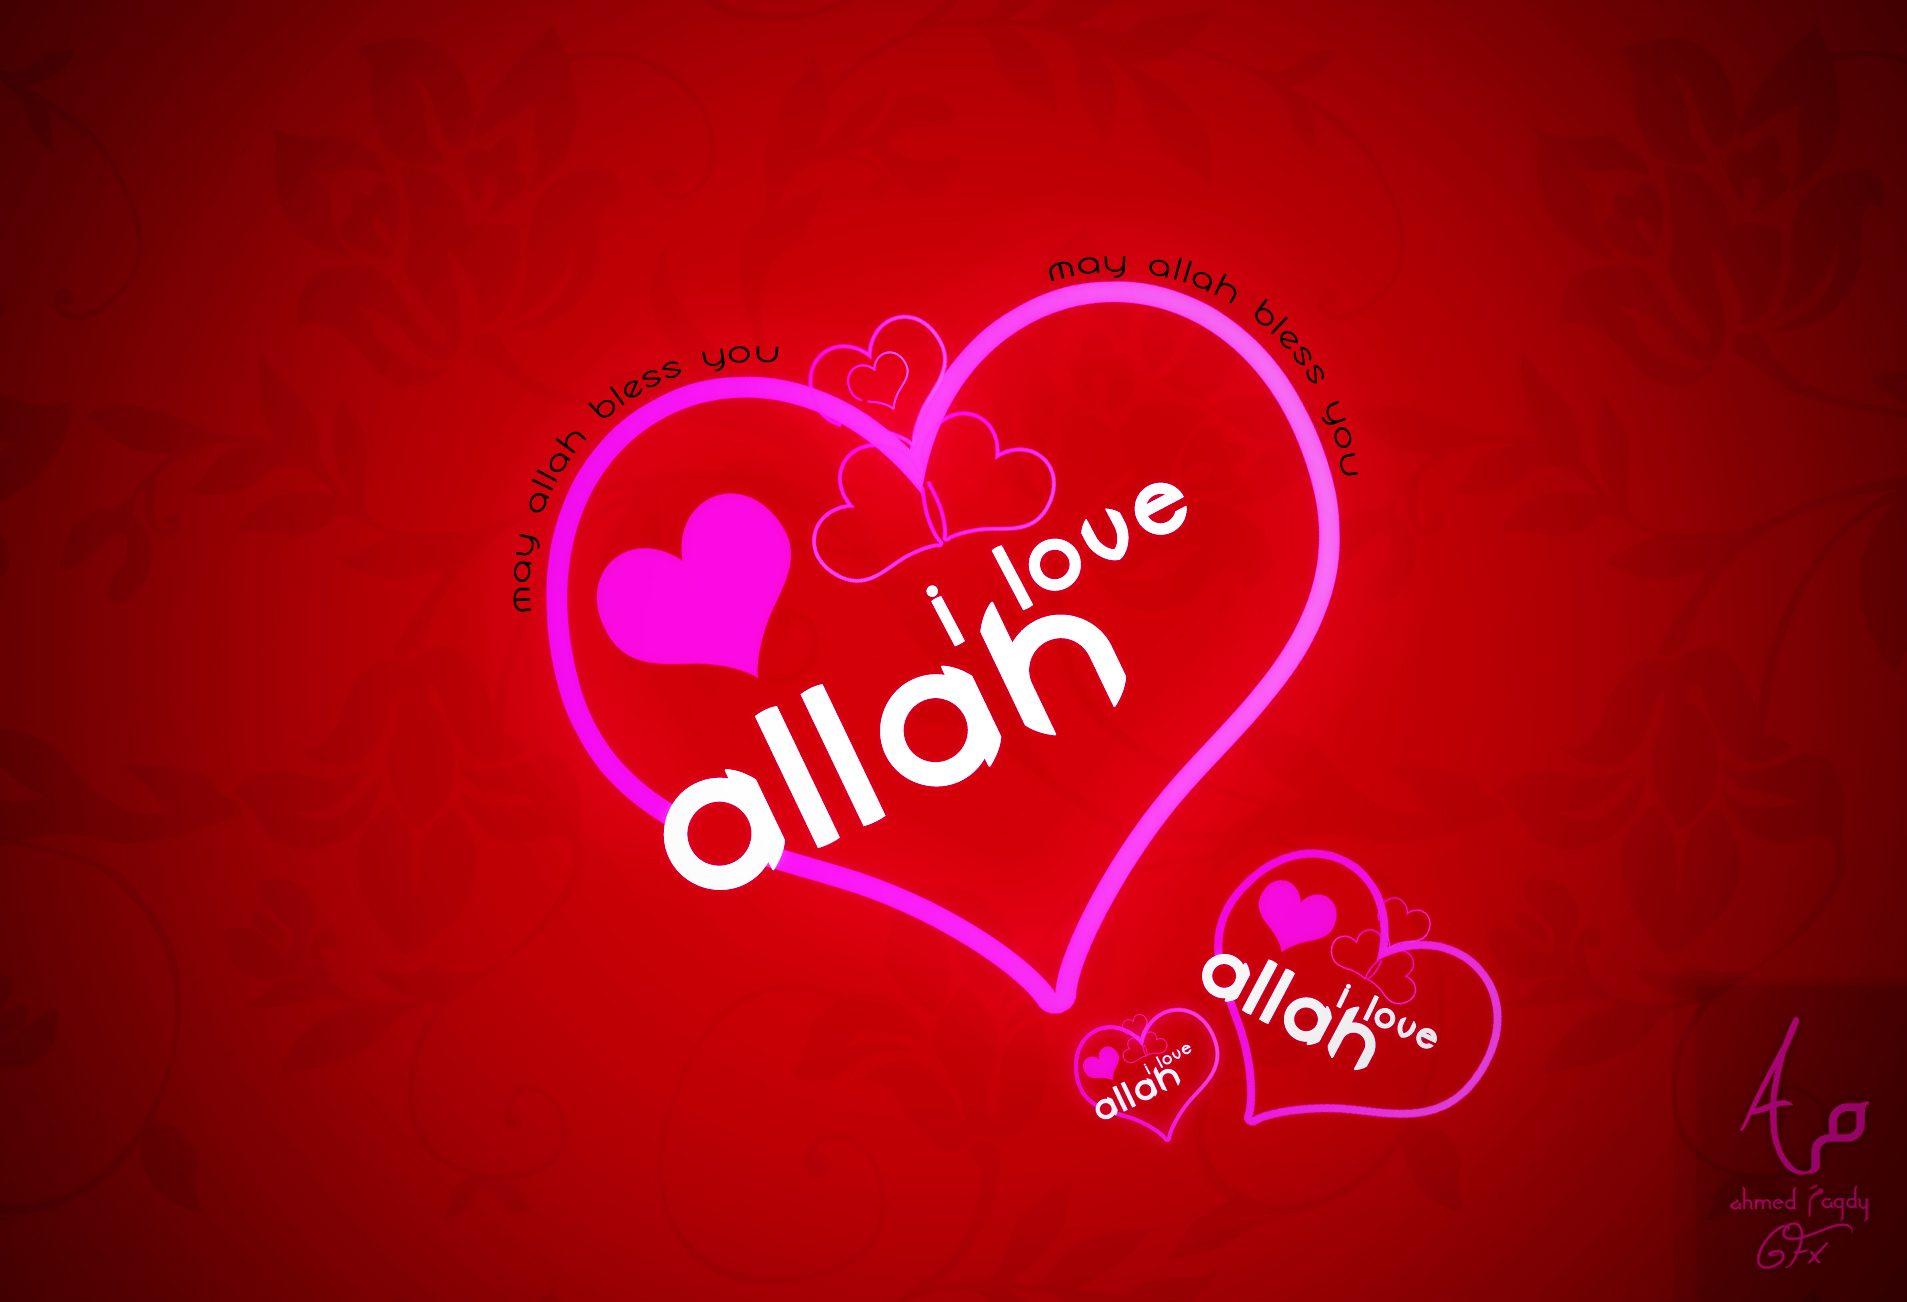 Love Allah by AhmedMagdy-GFX on DeviantArt